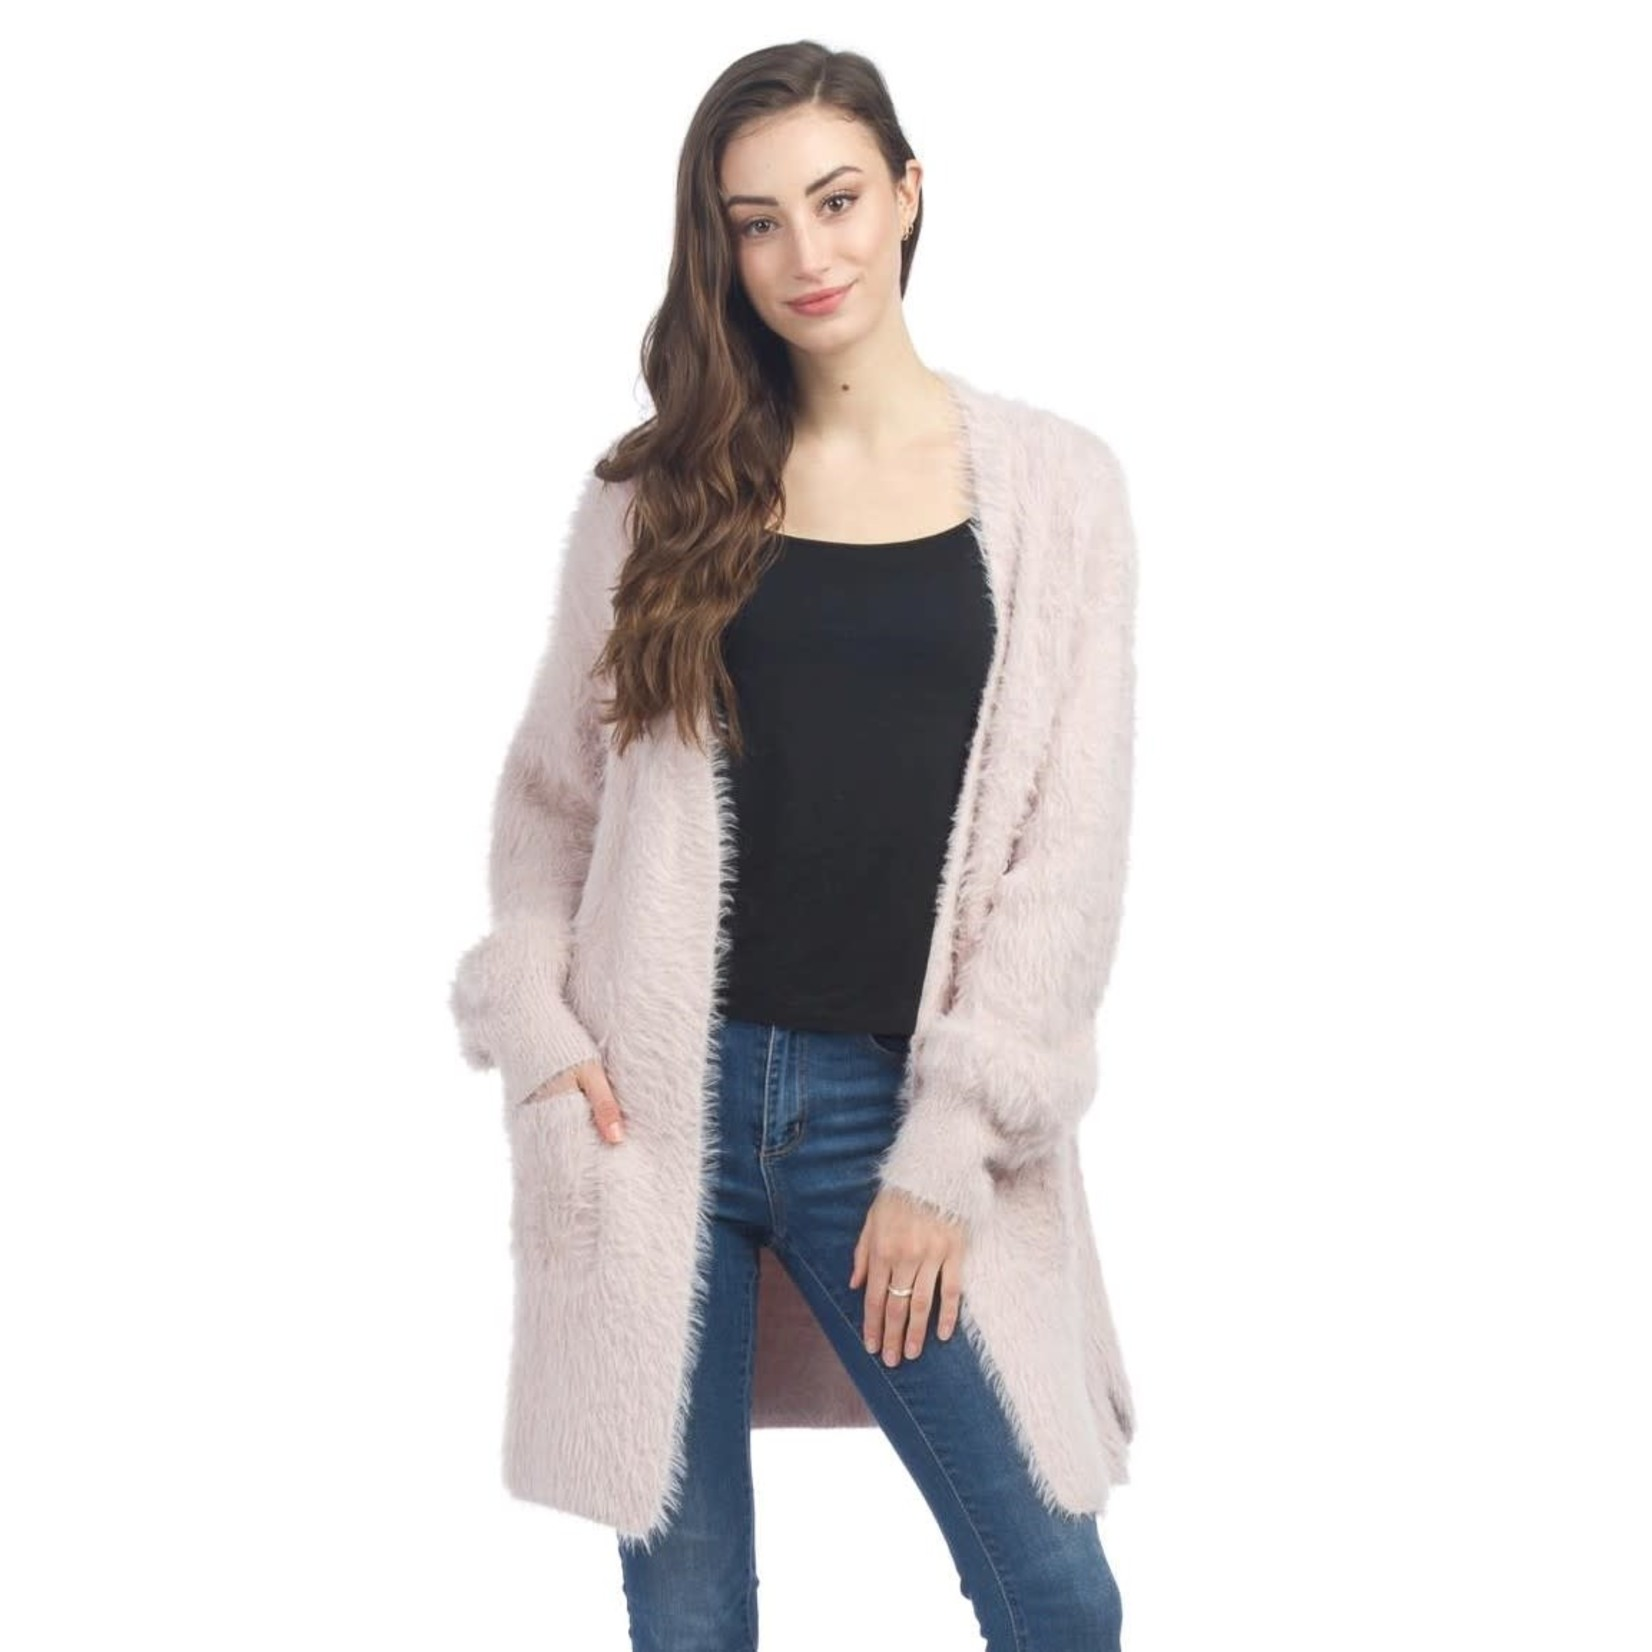 Papillon Fuzzy Long Cardigan With Pockets